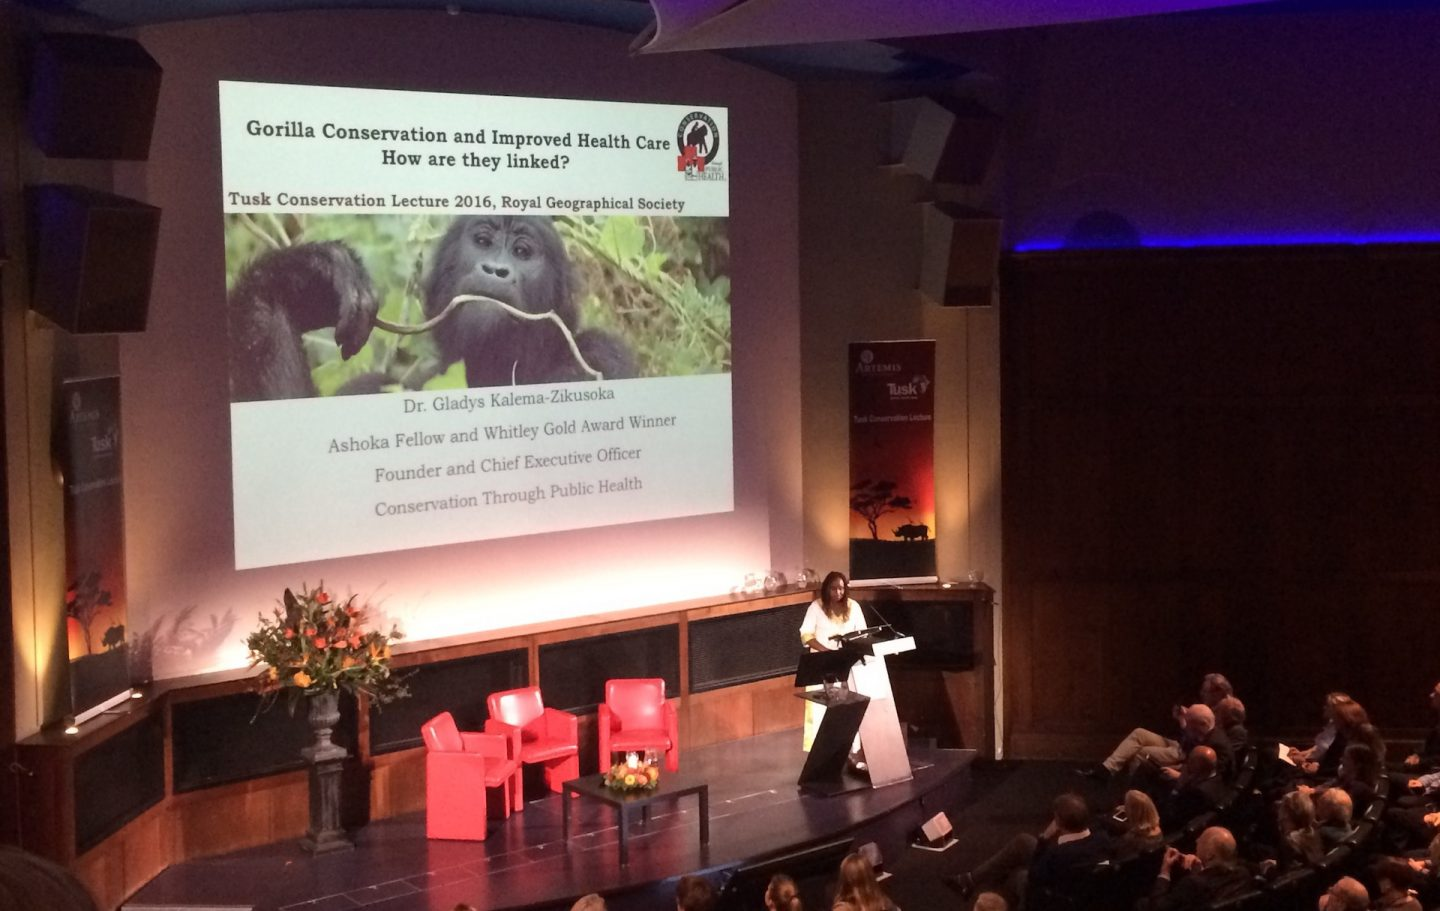 Tusk Conservation Lecture at the Royal Geographical Society 2016